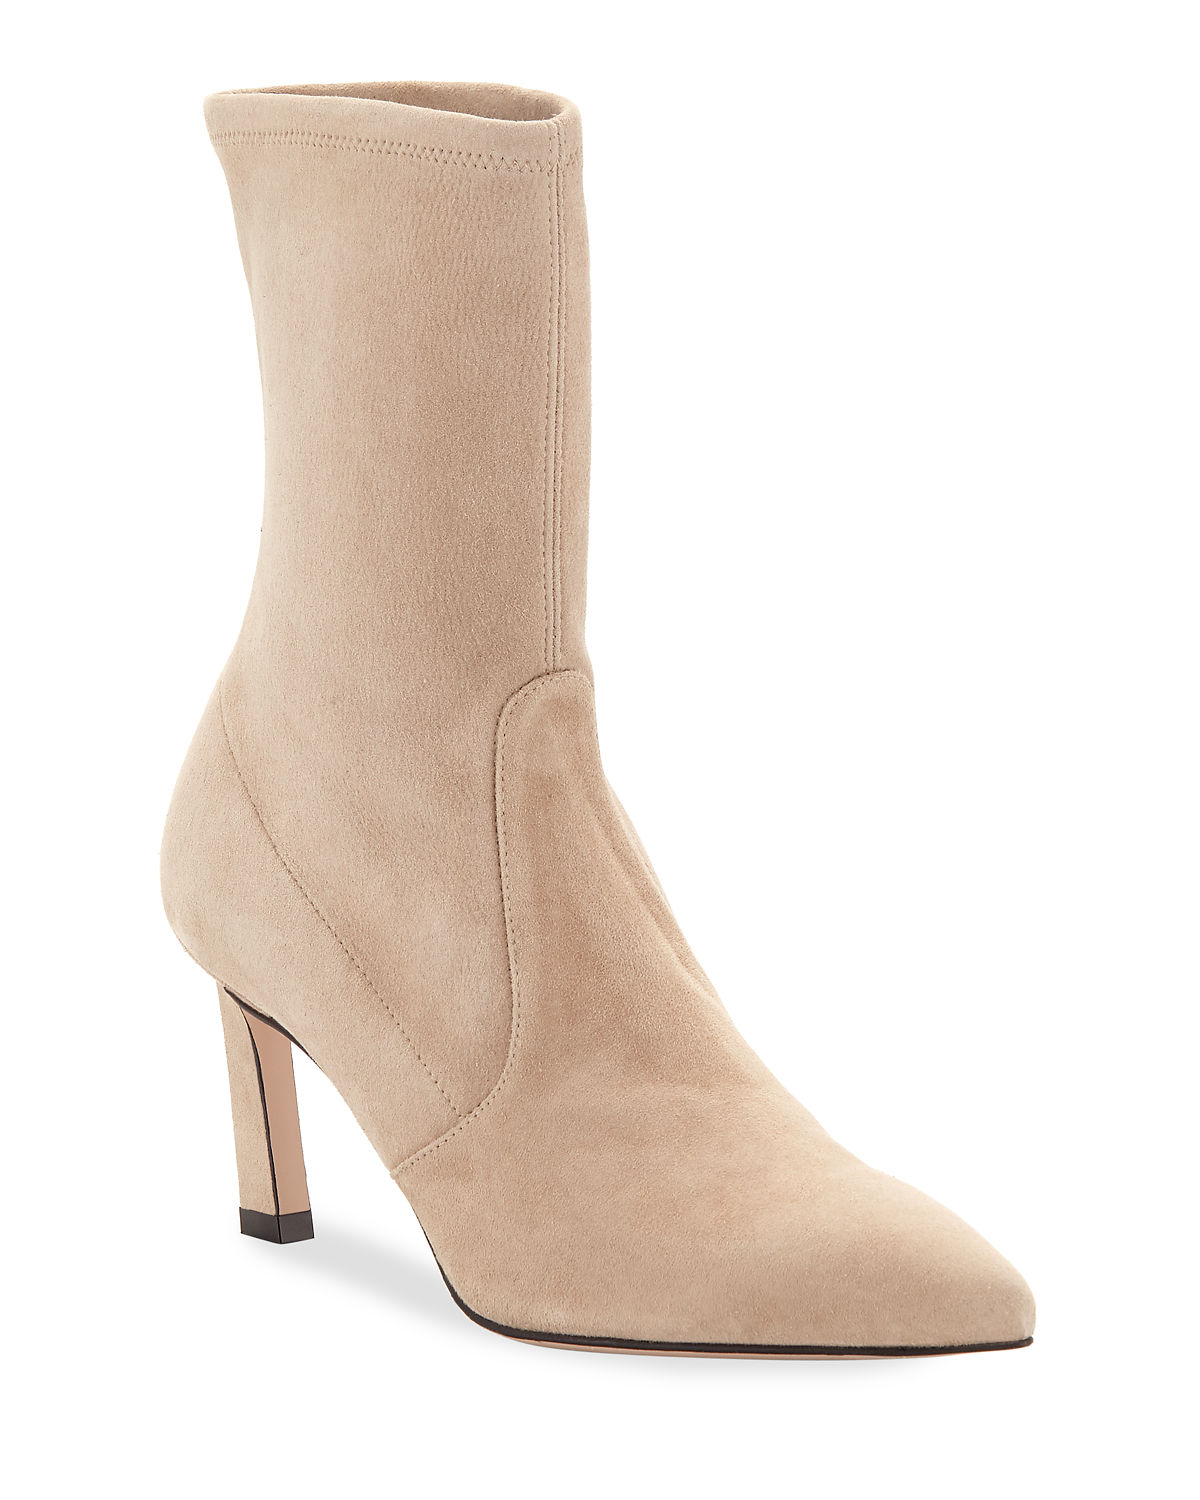 f03bcccf4349 Stuart WeitzmanRapture 75mm Suede Sock Bootie.  575.00. Free Shipping ...